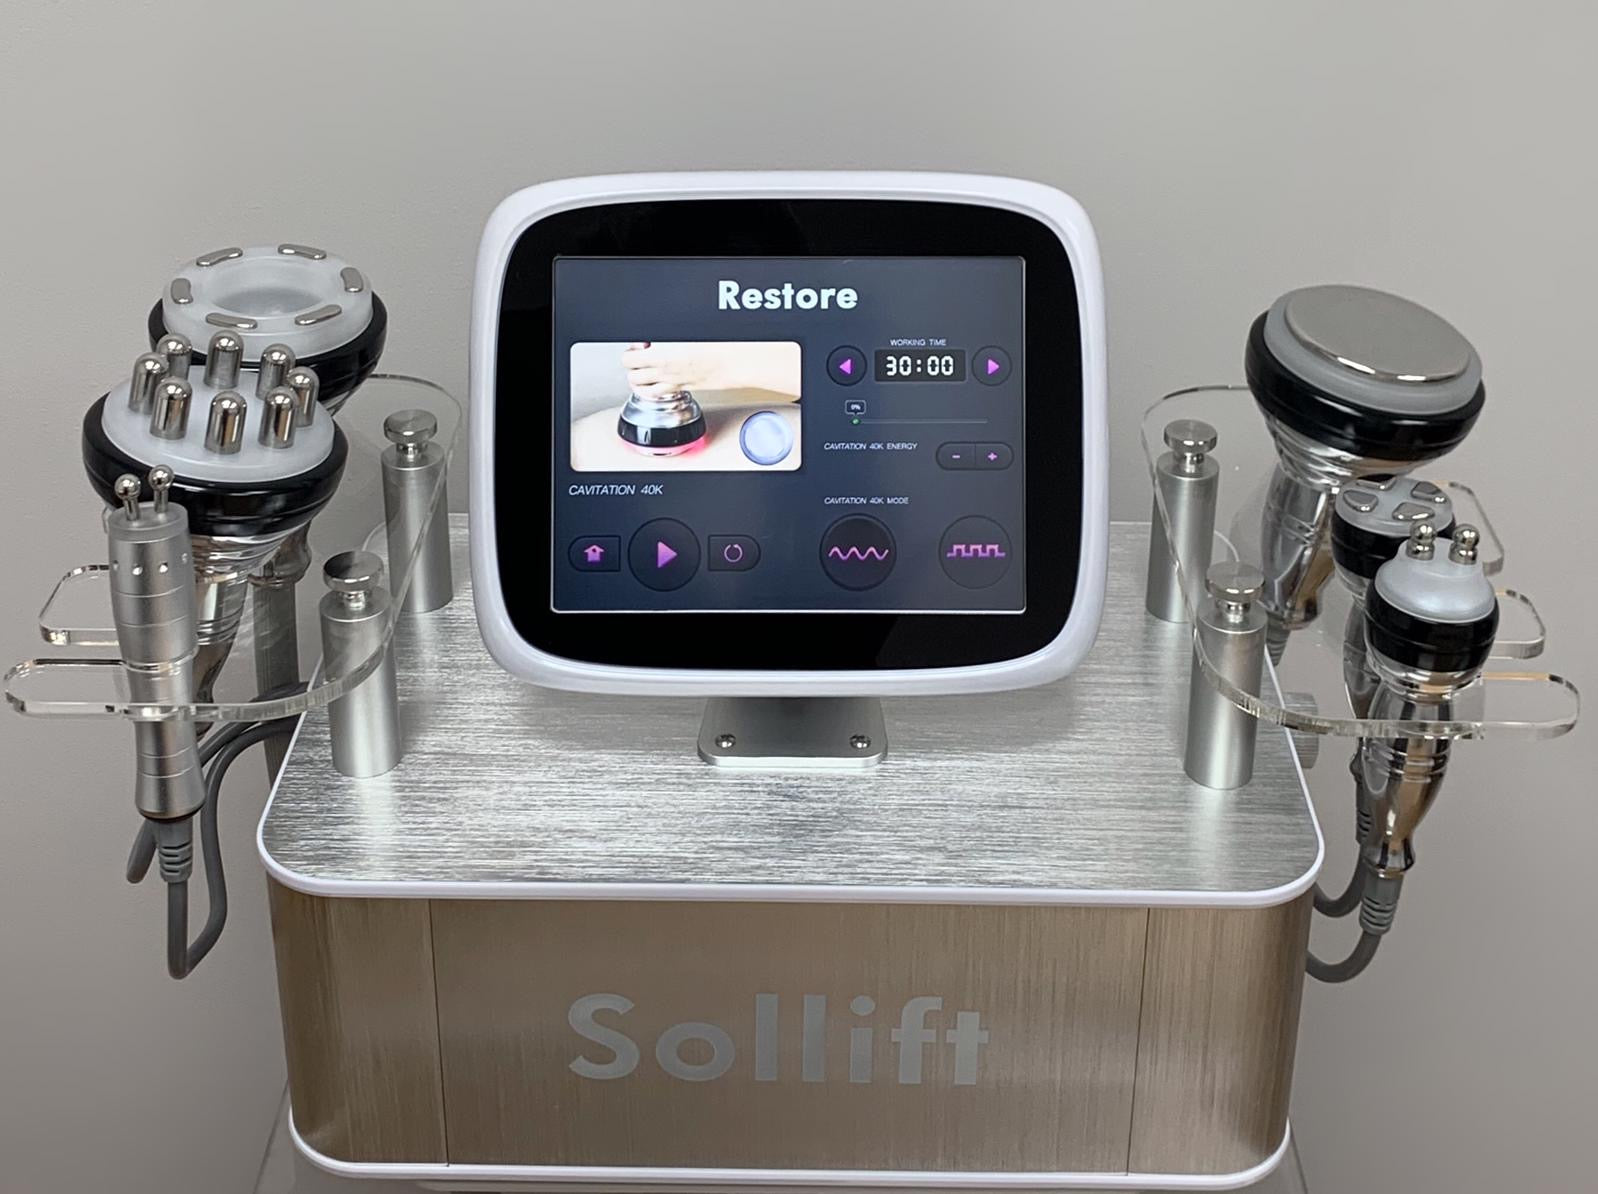 Sollift Restore 6 in 1 Cavitation System for Face and Body